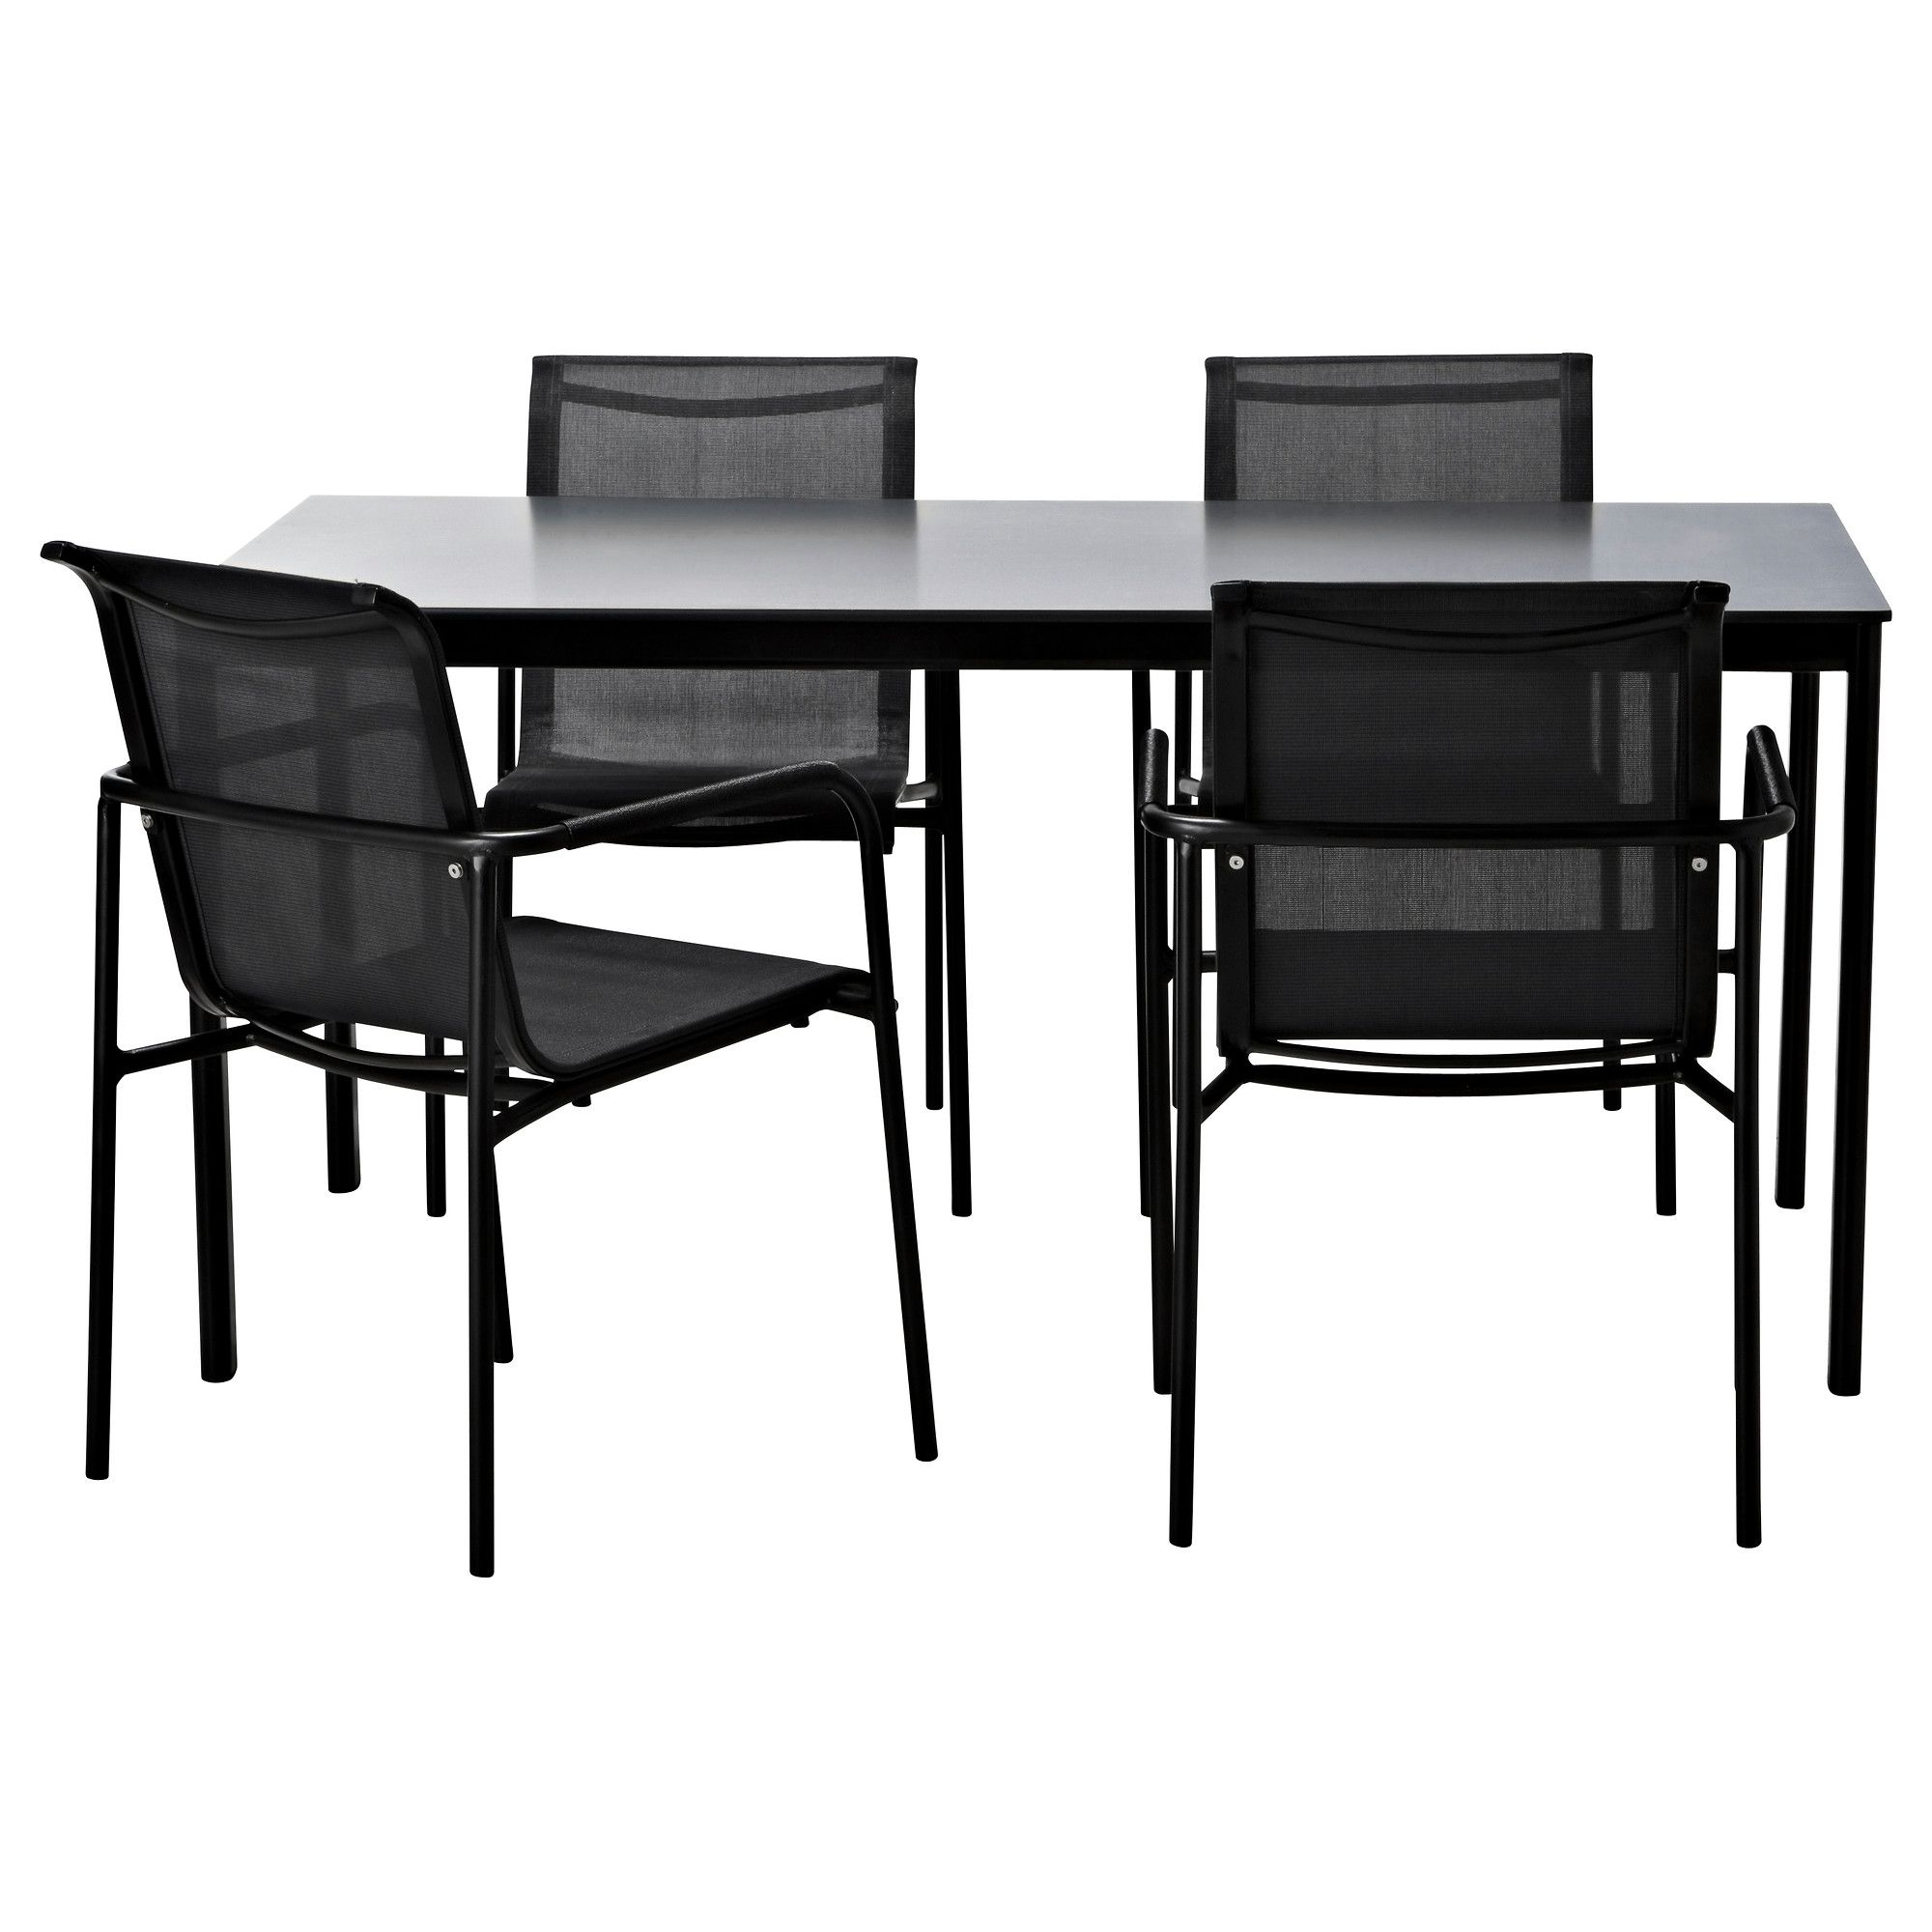 GARPEN Table and 4 chairs IKEA Decor ideas